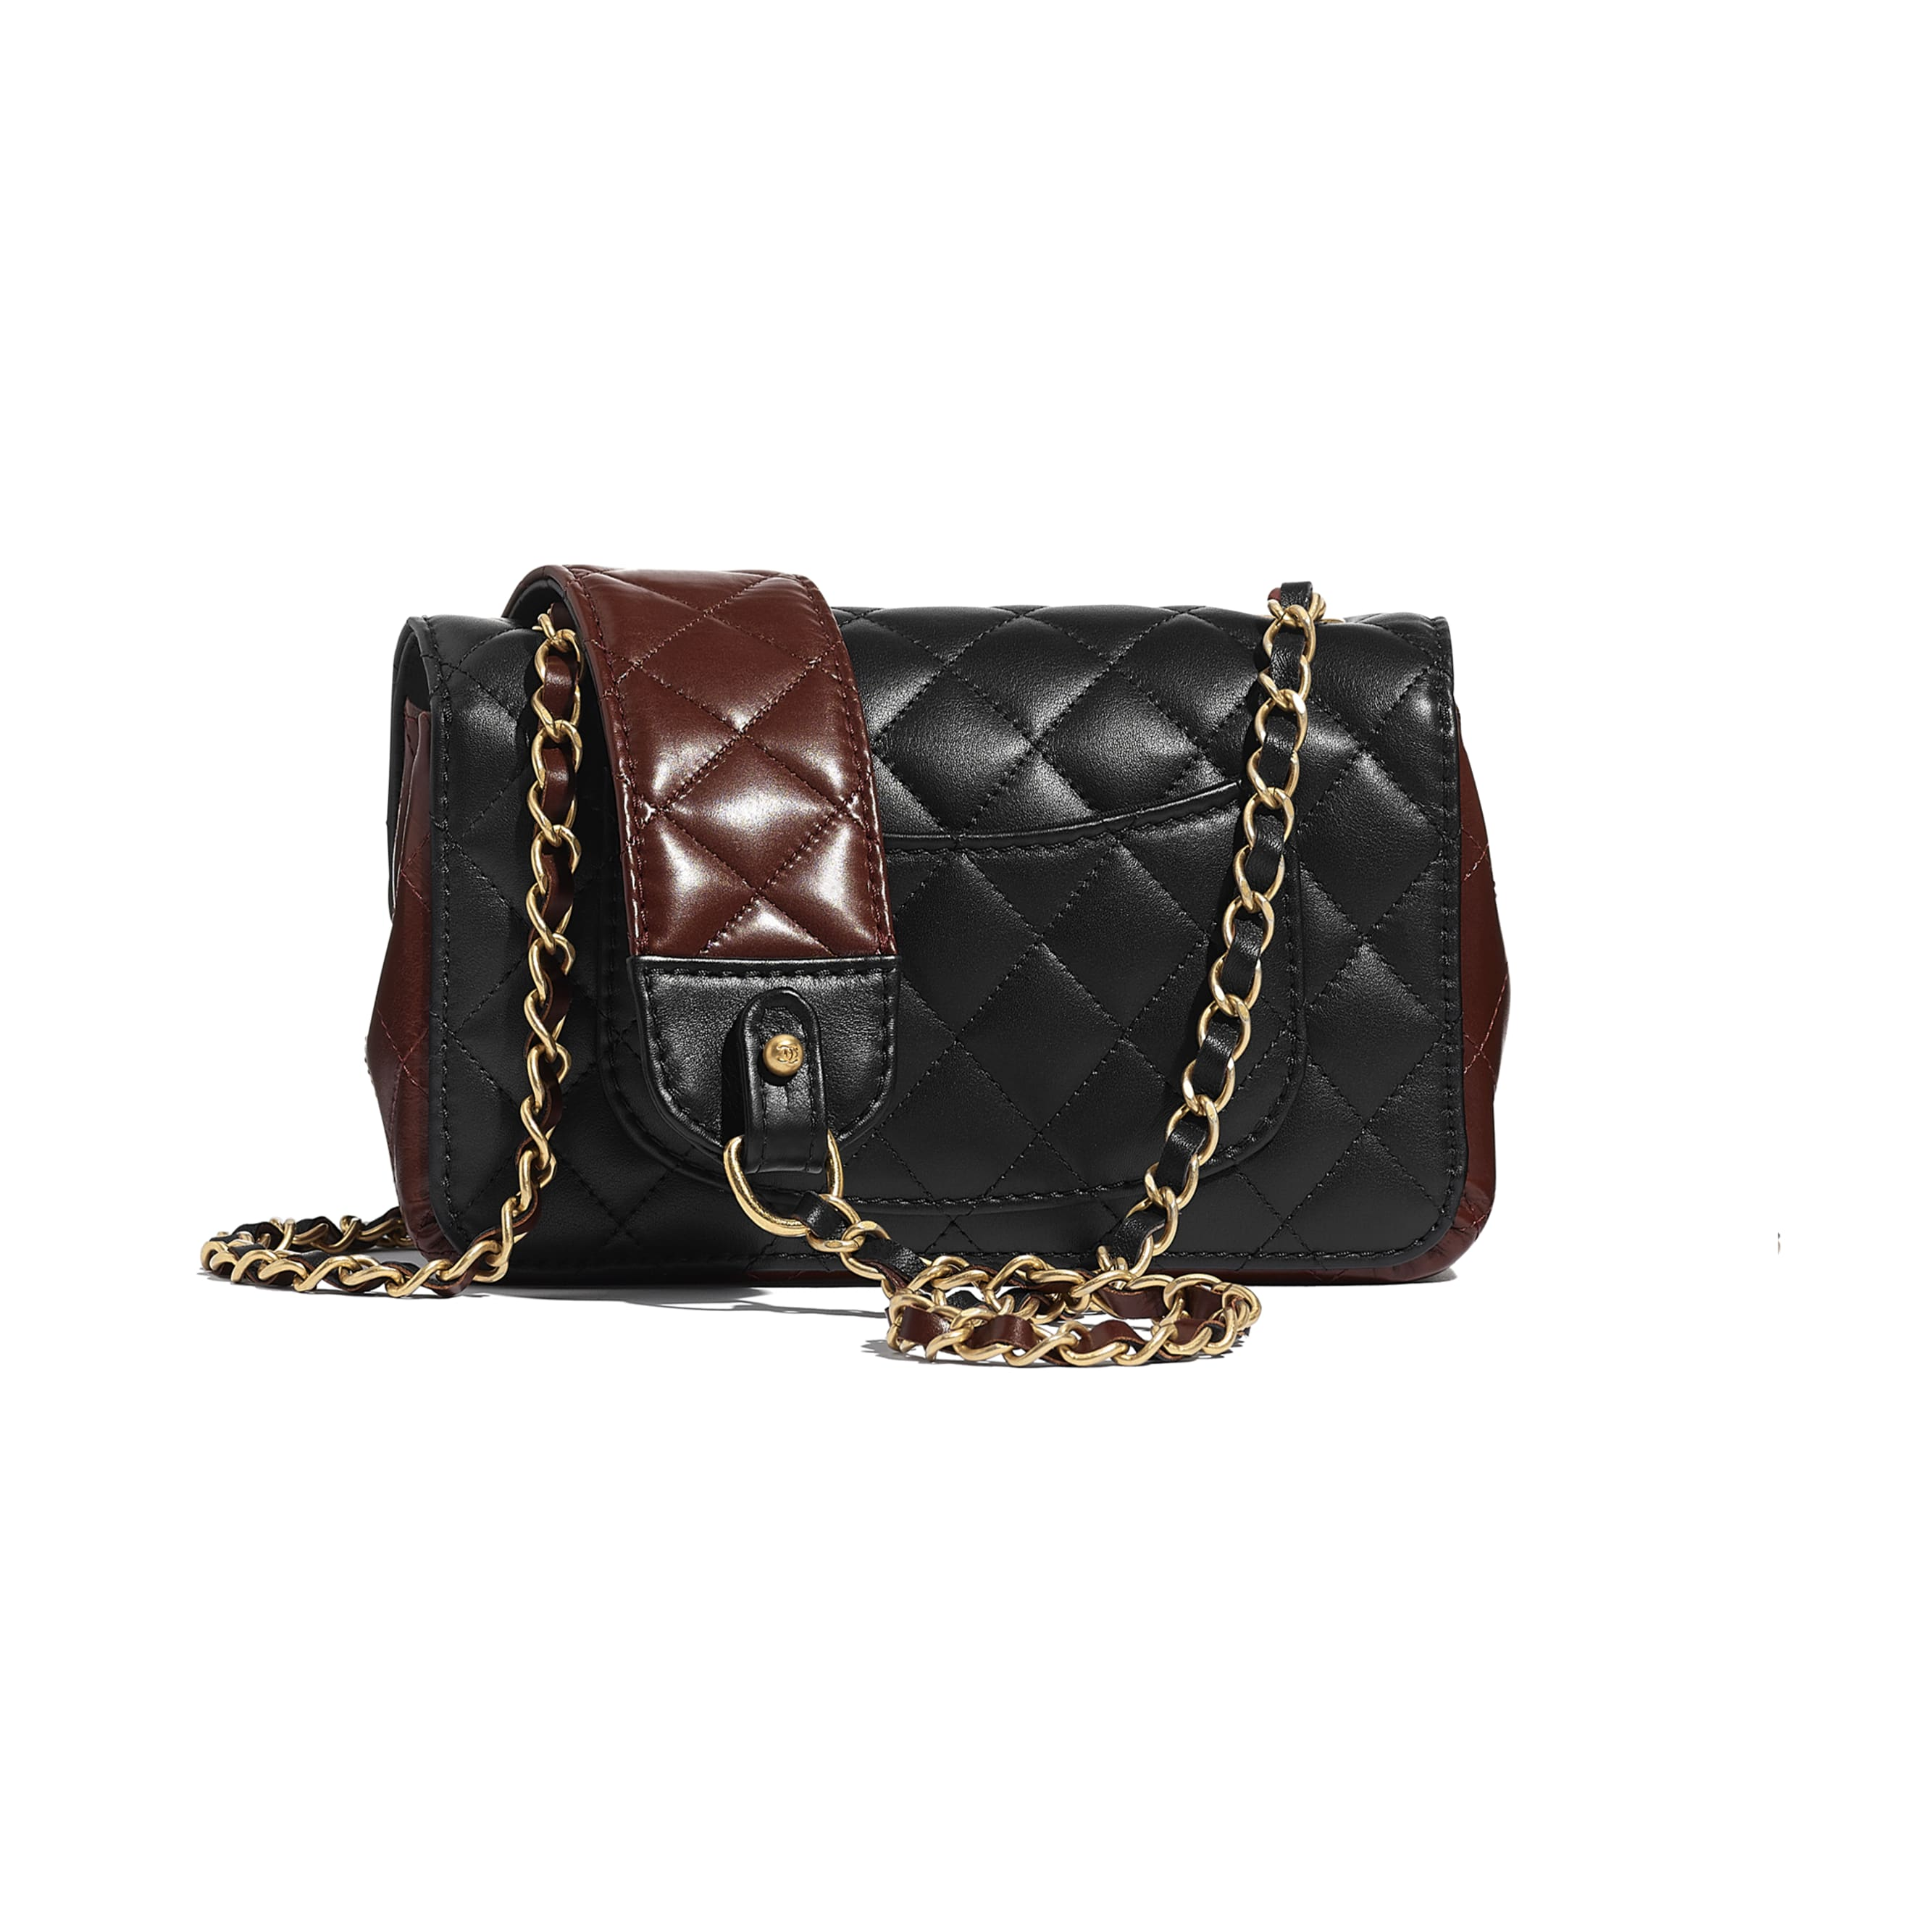 Small Flap Bag - Black & Brown - Calfskin & Gold-Tone Metal - CHANEL - Alternative view - see standard sized version